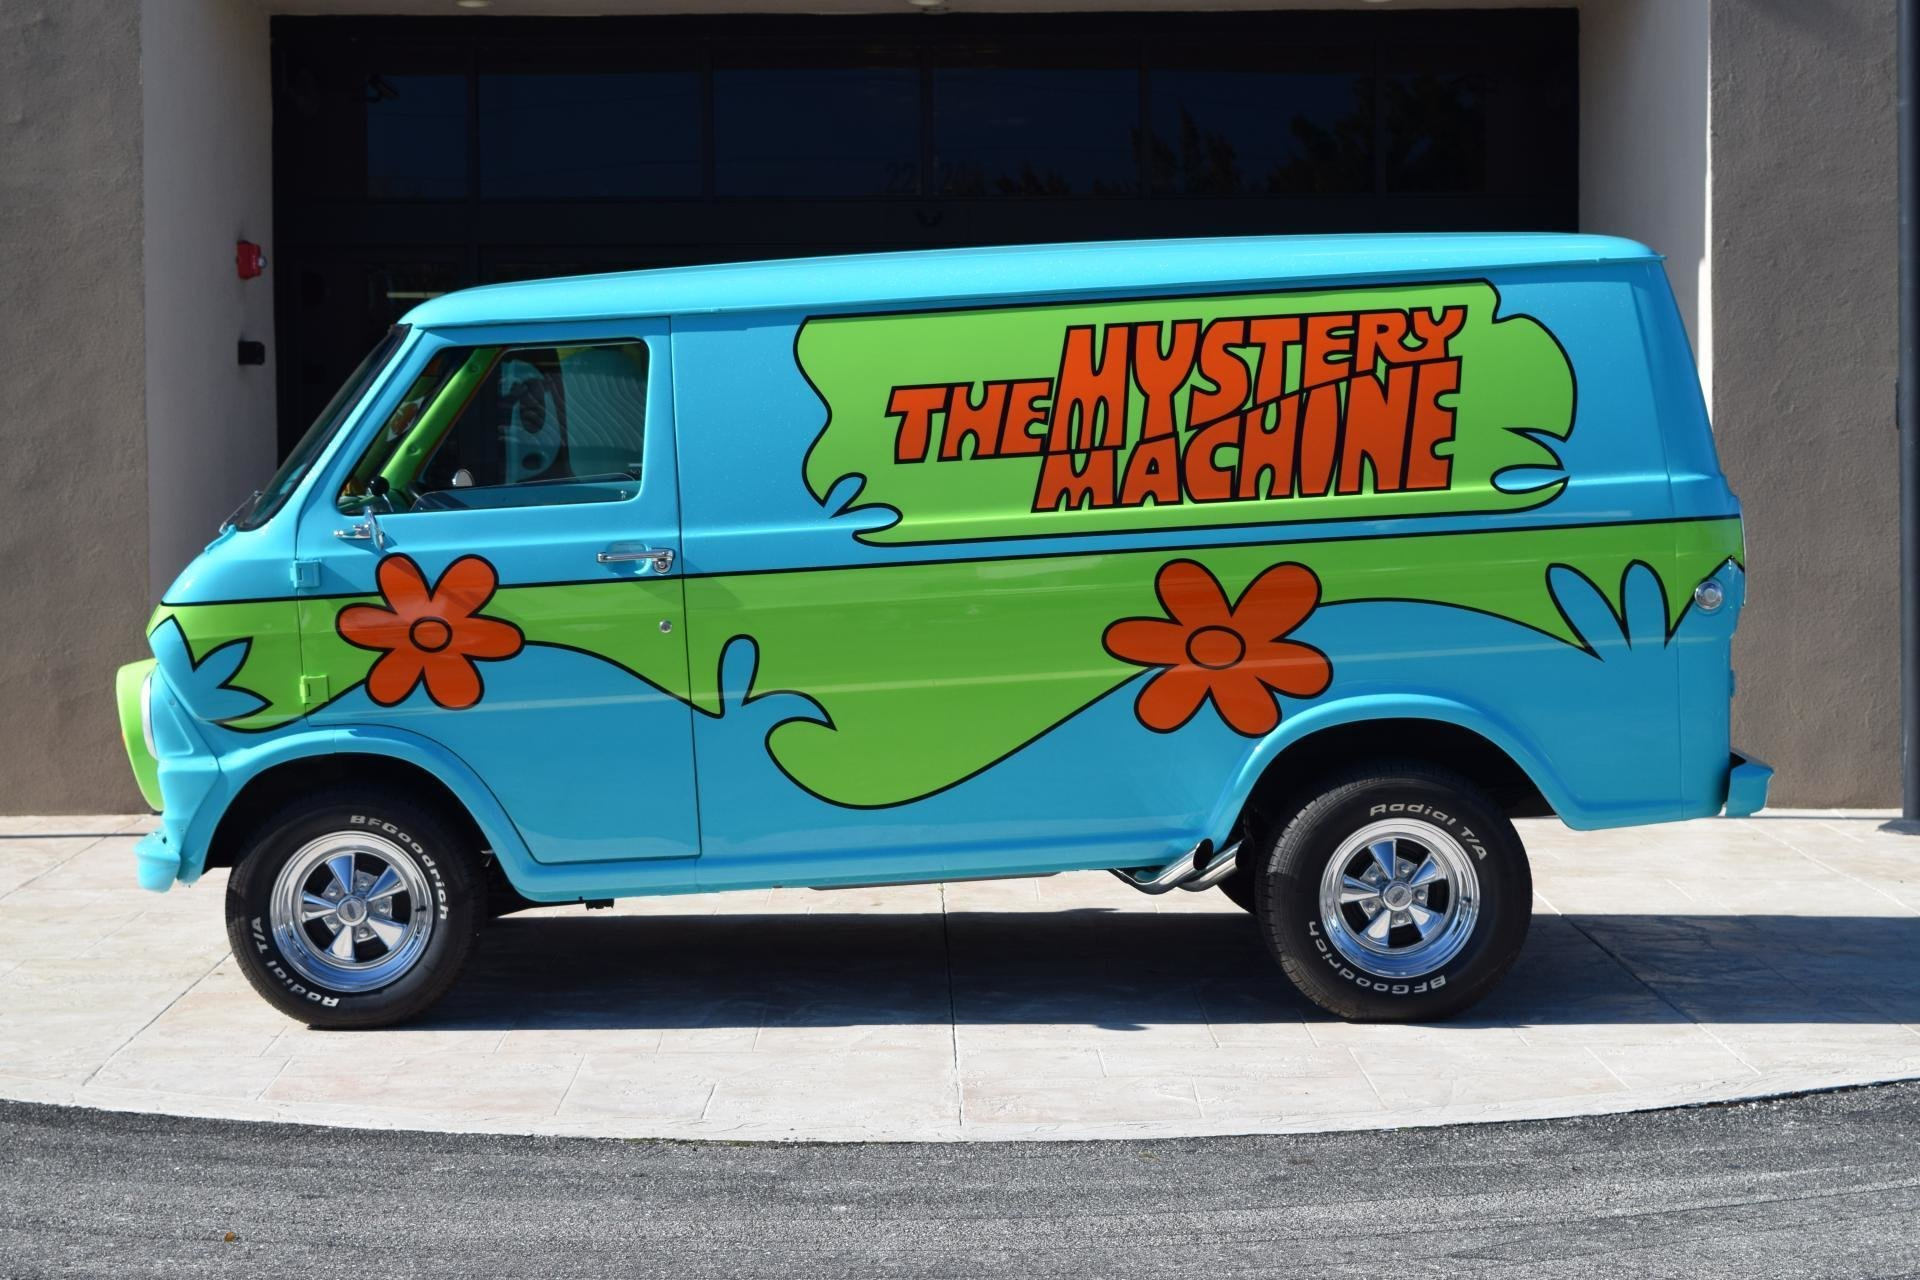 Cars For Sale Fresno Ca >> 1972 Z Movie Car Scooby Doo Mystery Machine | Ideal Classic Cars LLC